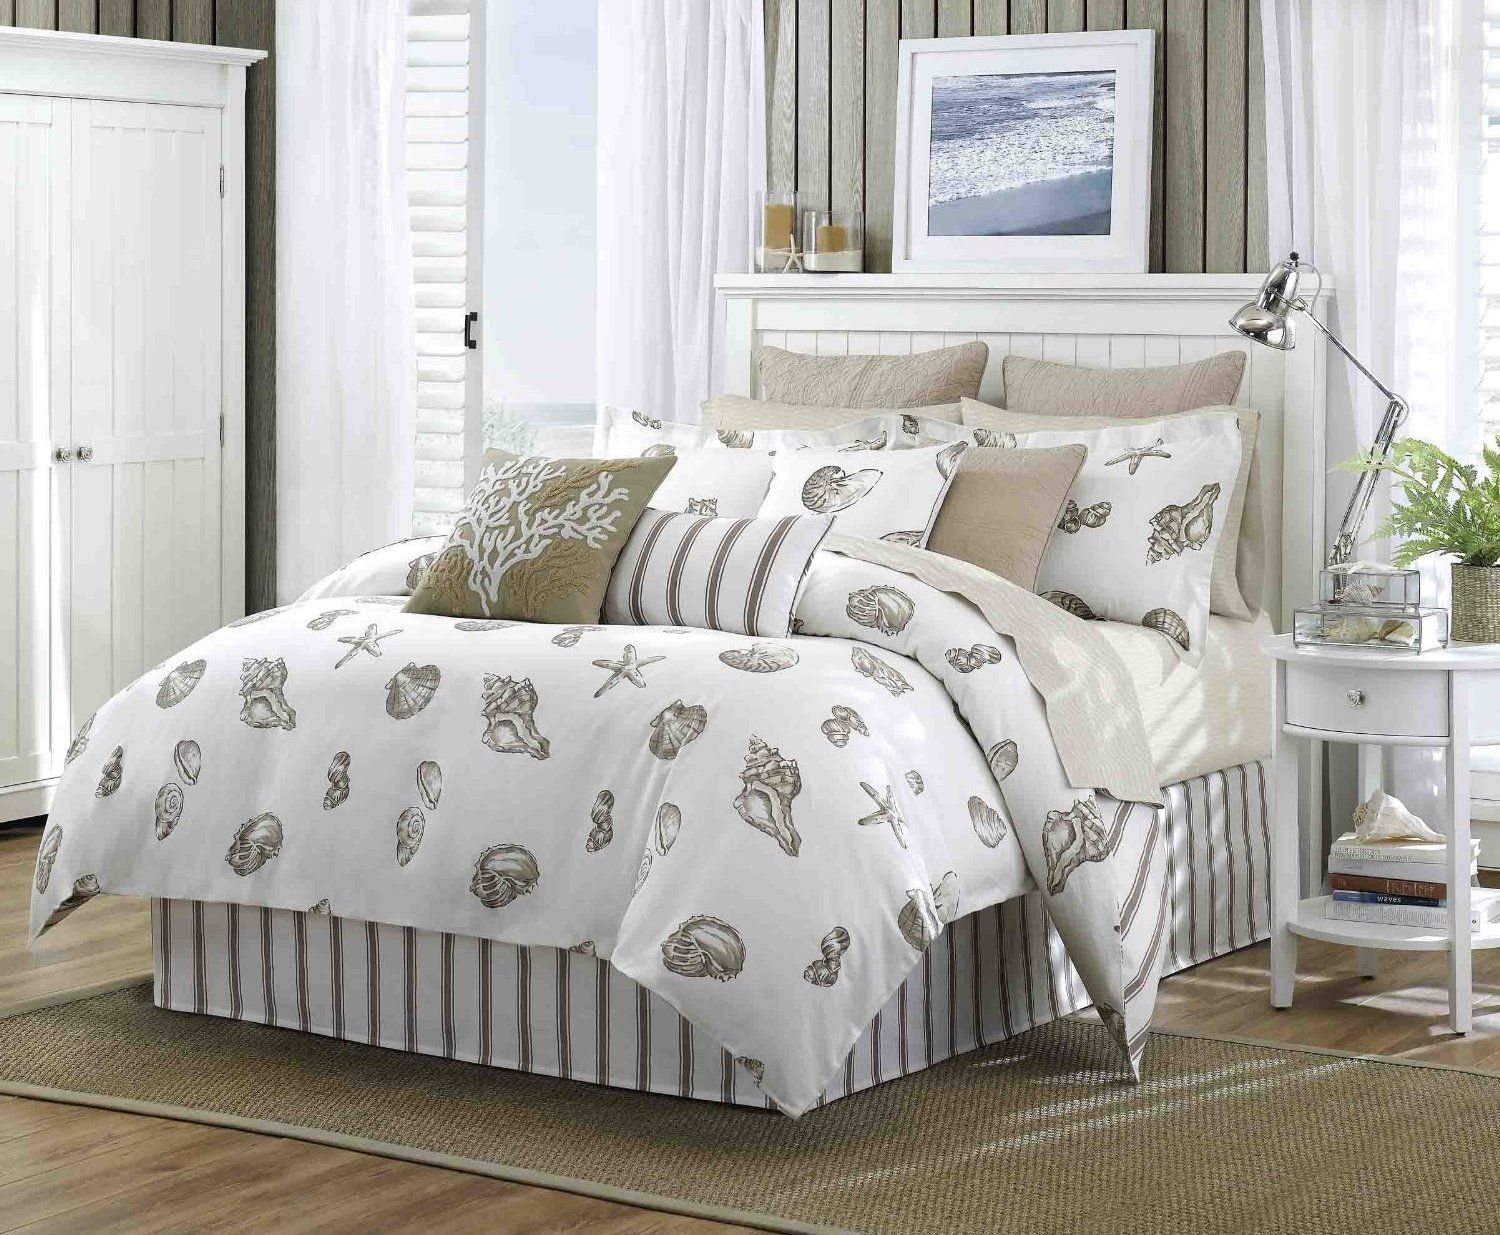 Beach Themed Bedroom Captivating Gray Beach Themed Rooms Ideas Country White Bedroom